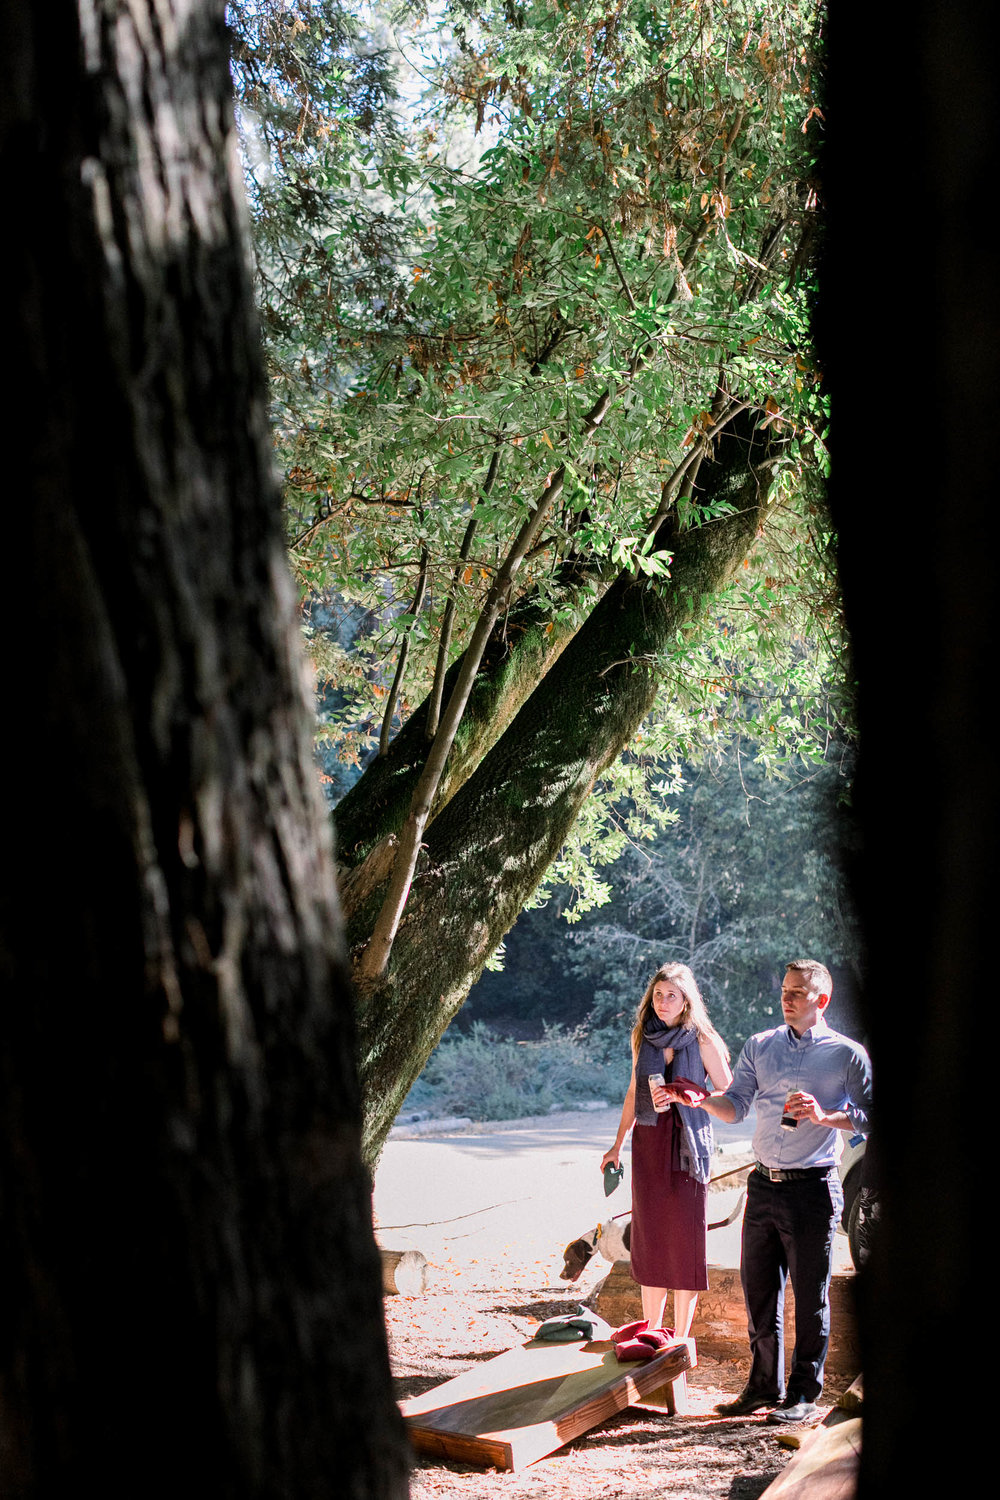 092918_J+S_Mt Madonna Redwoods Wedding_Buena Lane Photography_071.jpg